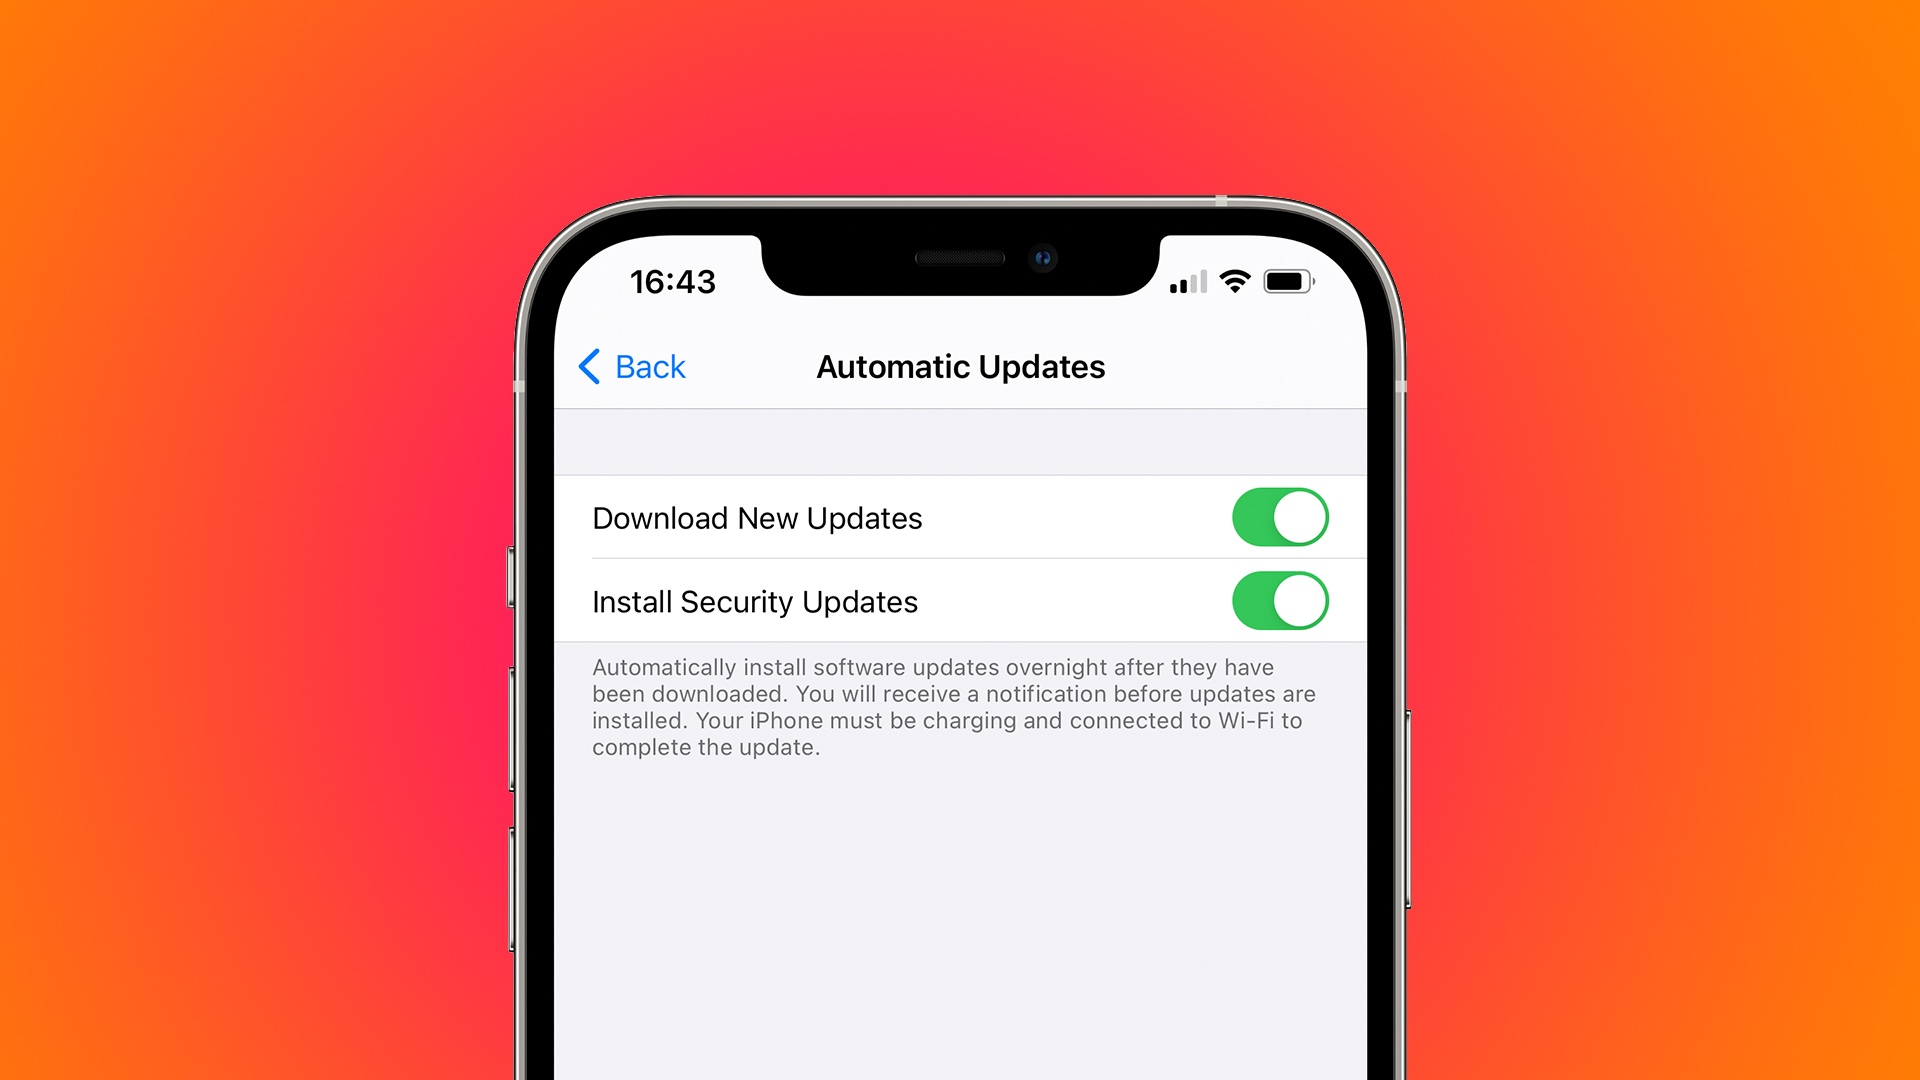 """A screenshot showing the """"Download New Updates"""" and """"Install Security Updates"""" toggles within the Automatic Updates settings on iPhone"""